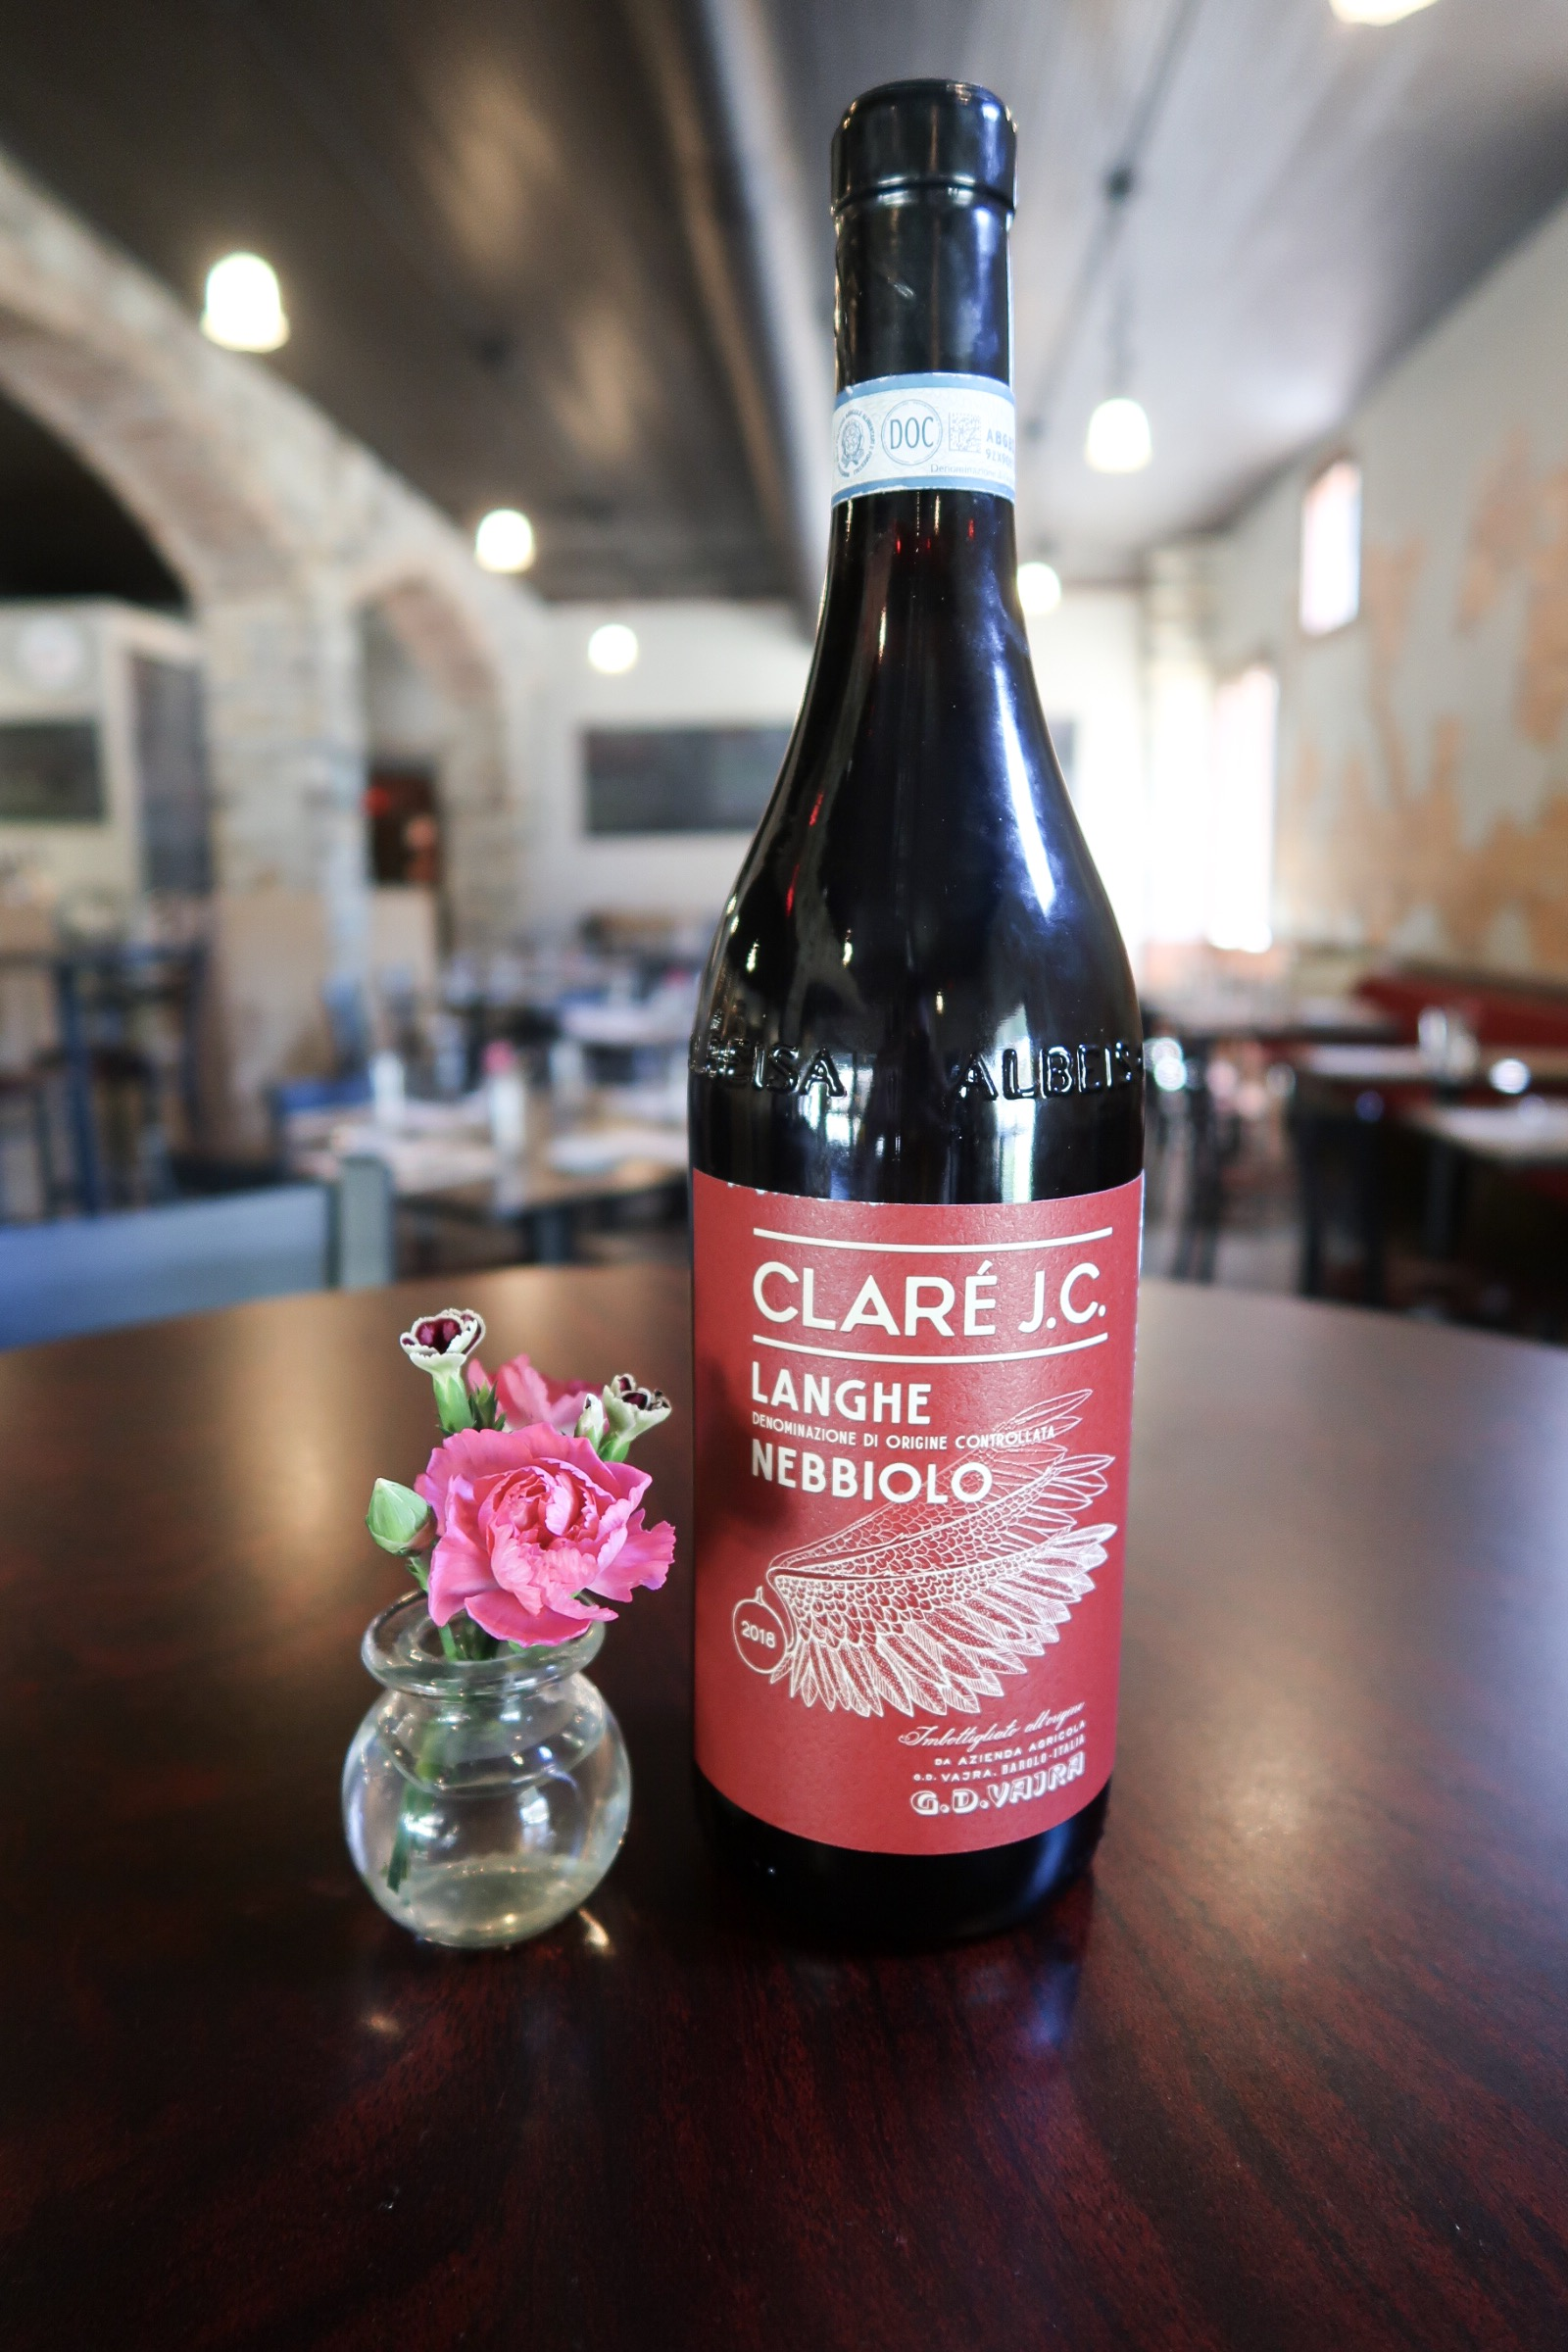 "G.D. Vajra - G.D. Vajra ""CLARÉ J.C."" Nebbiolo 2018Winemakers: Giuseppe Vaijra & the Vaijra familyRegion: Italy, Piedmont, LangheGrape Varietal(s): 100% NebbioloViticulture: fruit sourced from several of Vaijra's younger vineyardsMethod: Approximately 20% whole cluster fermentation with short aging in stainless steelServing Suggestions: Serve slightly chilled during the warmer days, or pair with apertivos and BBQ.Age: Drink now through 2021Tasting Notes: Vibrant ruby with clean transparency, cherry and candied strawberries, rose petals, and sweet spice. Silky tannins, lively acidity, with smooth finish."